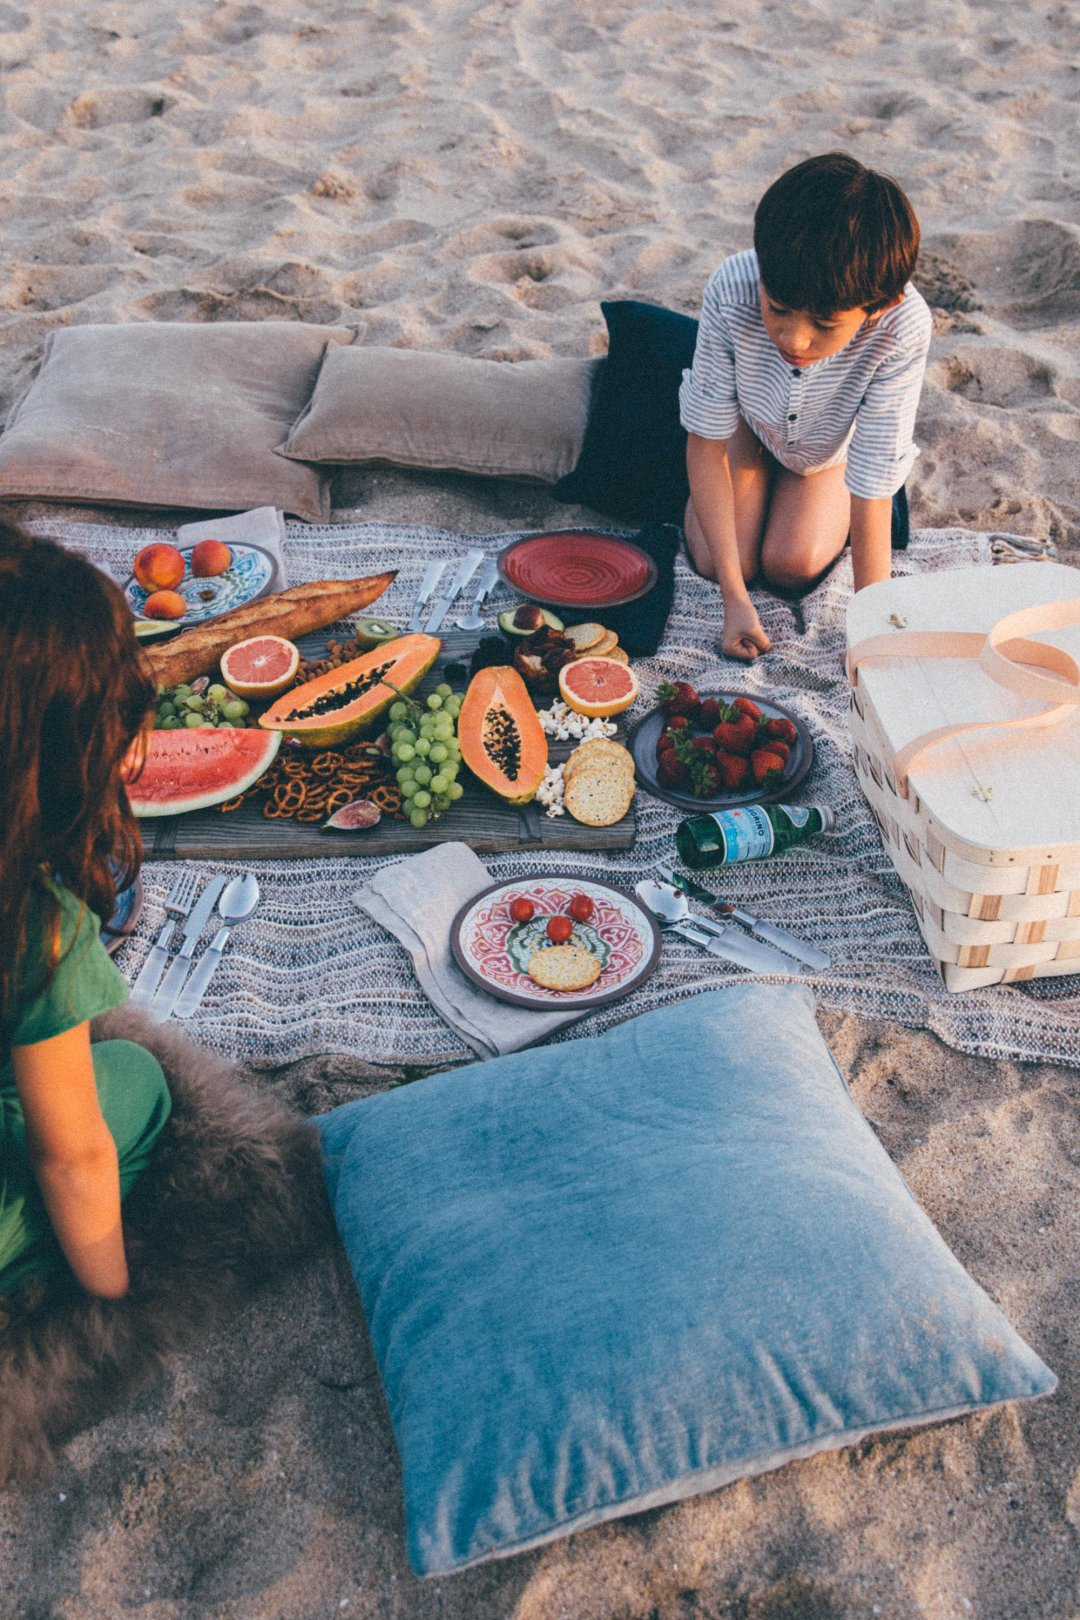 Pillows around blanket with picnic foods and kids eating